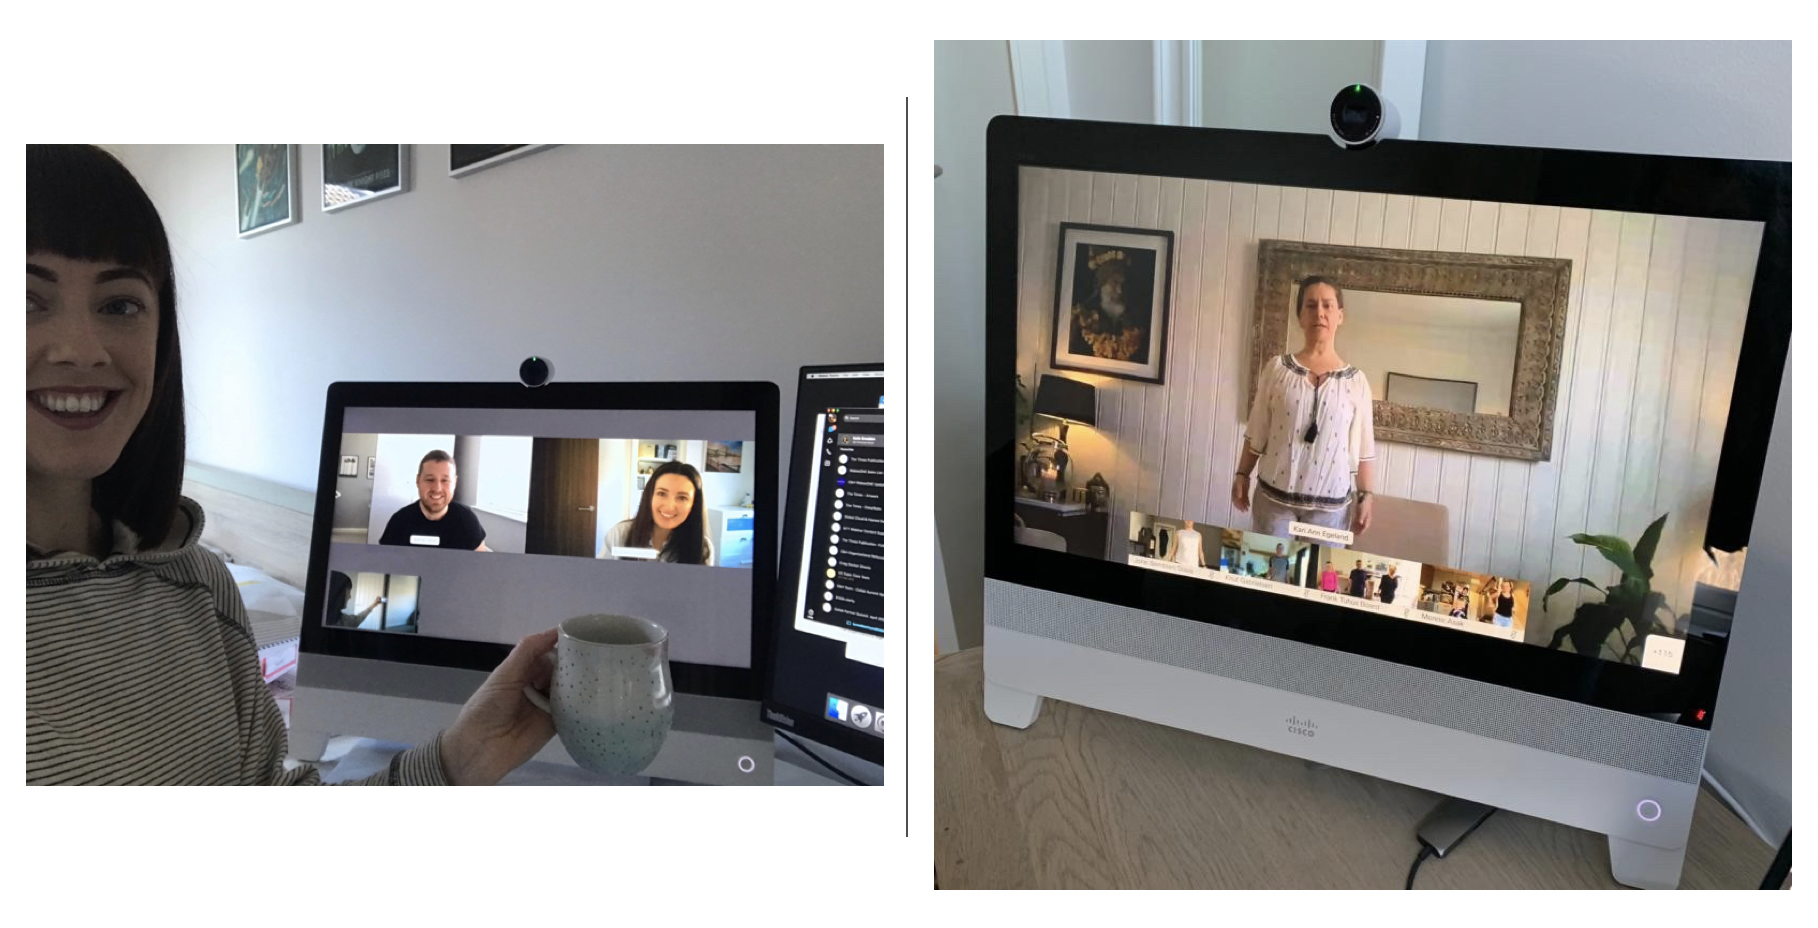 From Digital Conferences to Work-From-Home Cisco Collaboration Has Got Your Back